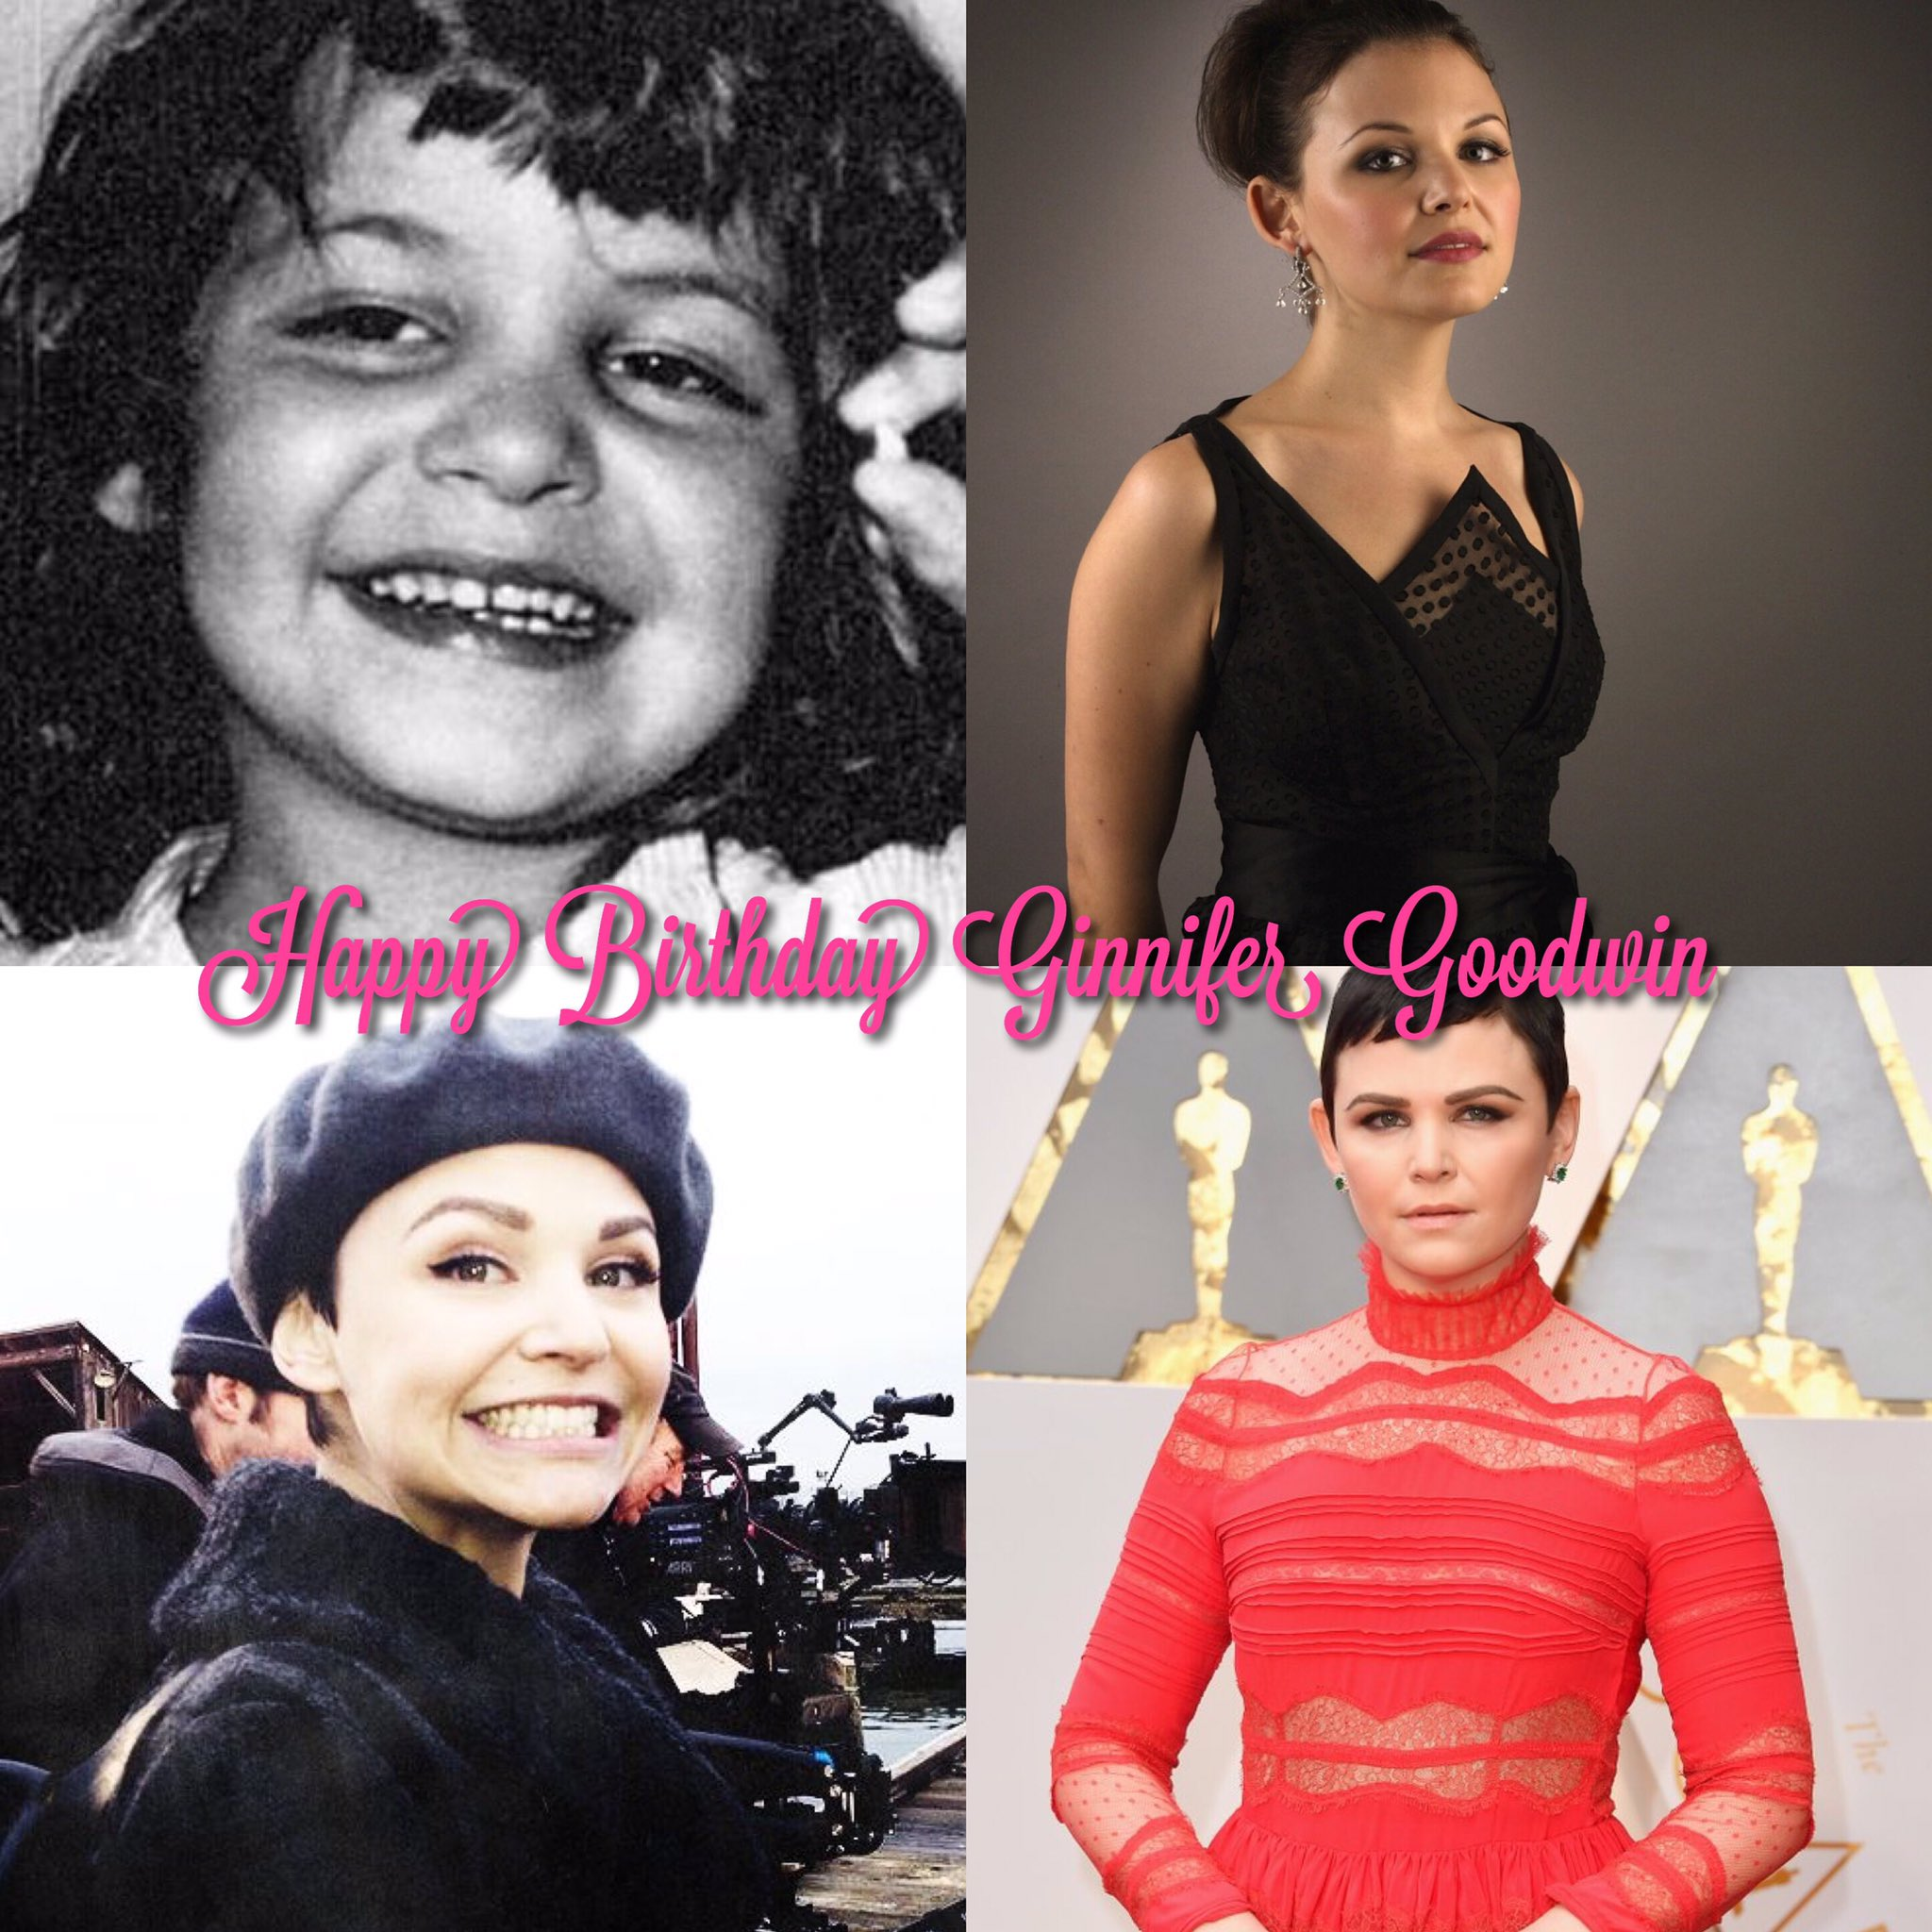 Happy Birthday to one of my favorite actresses: the talented, funny and beautiful Ginnifer Goodwin!